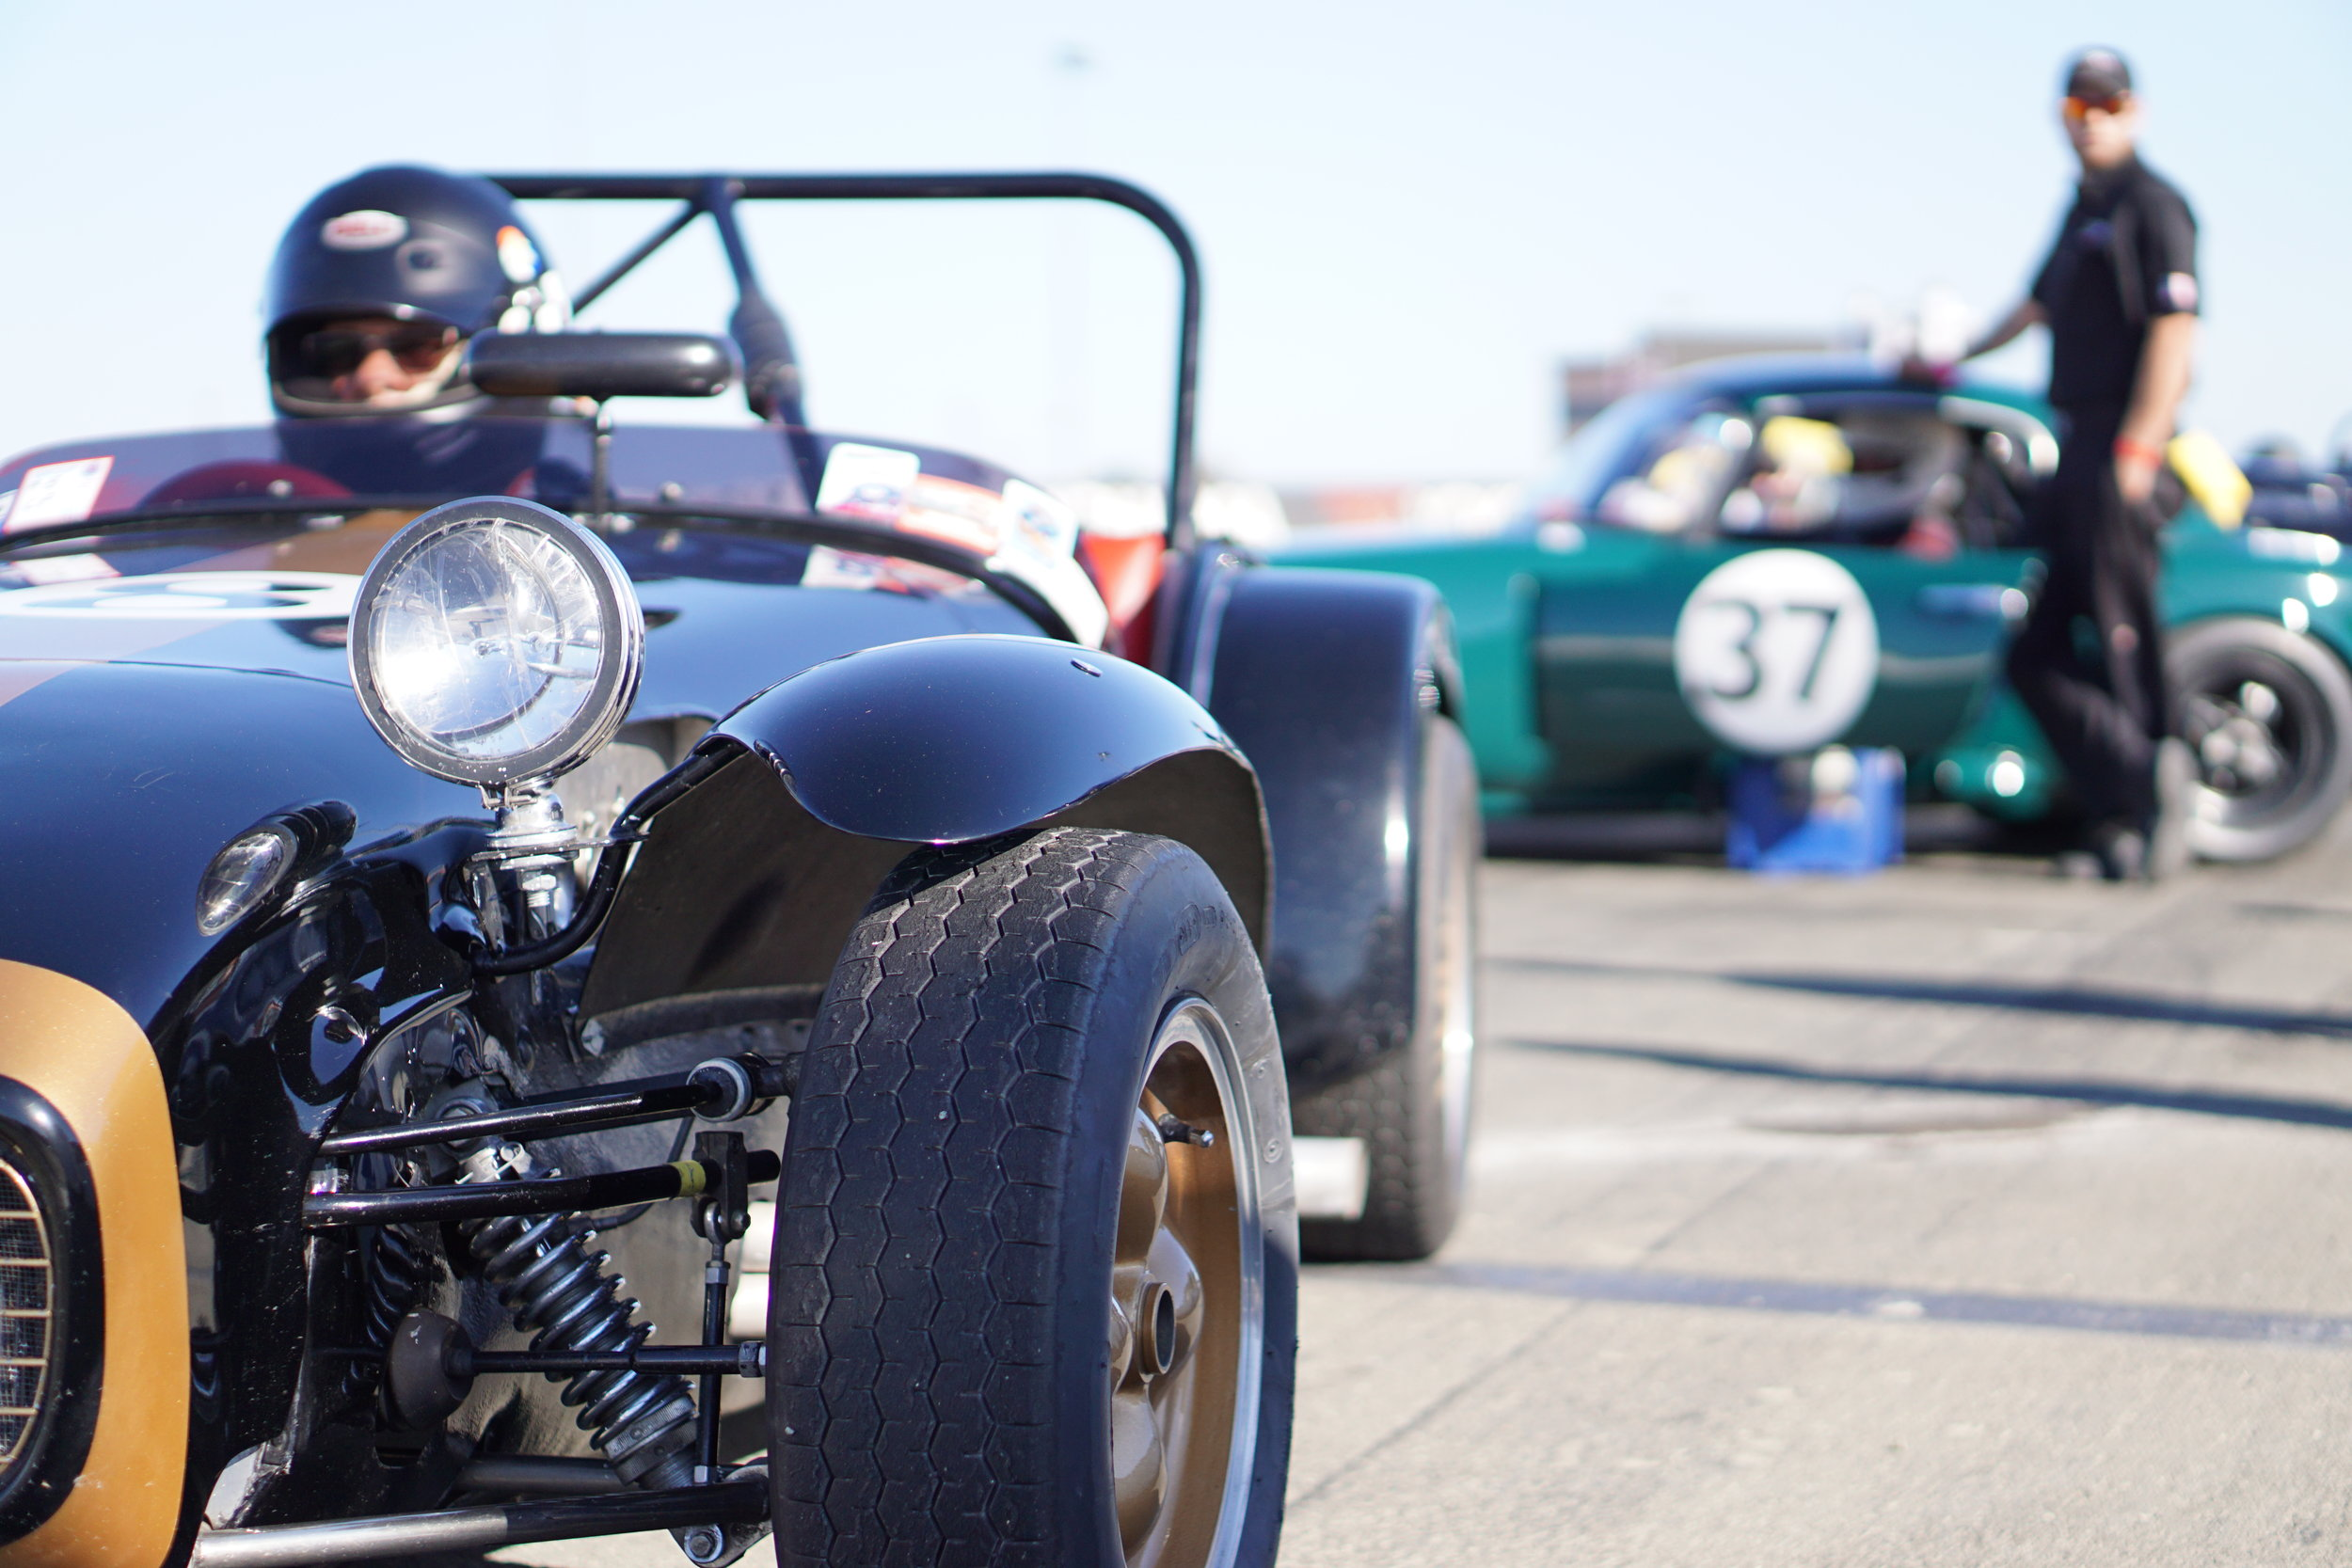 Lotus 7, light, incredible handling, simple, a blast to drive, great parts support